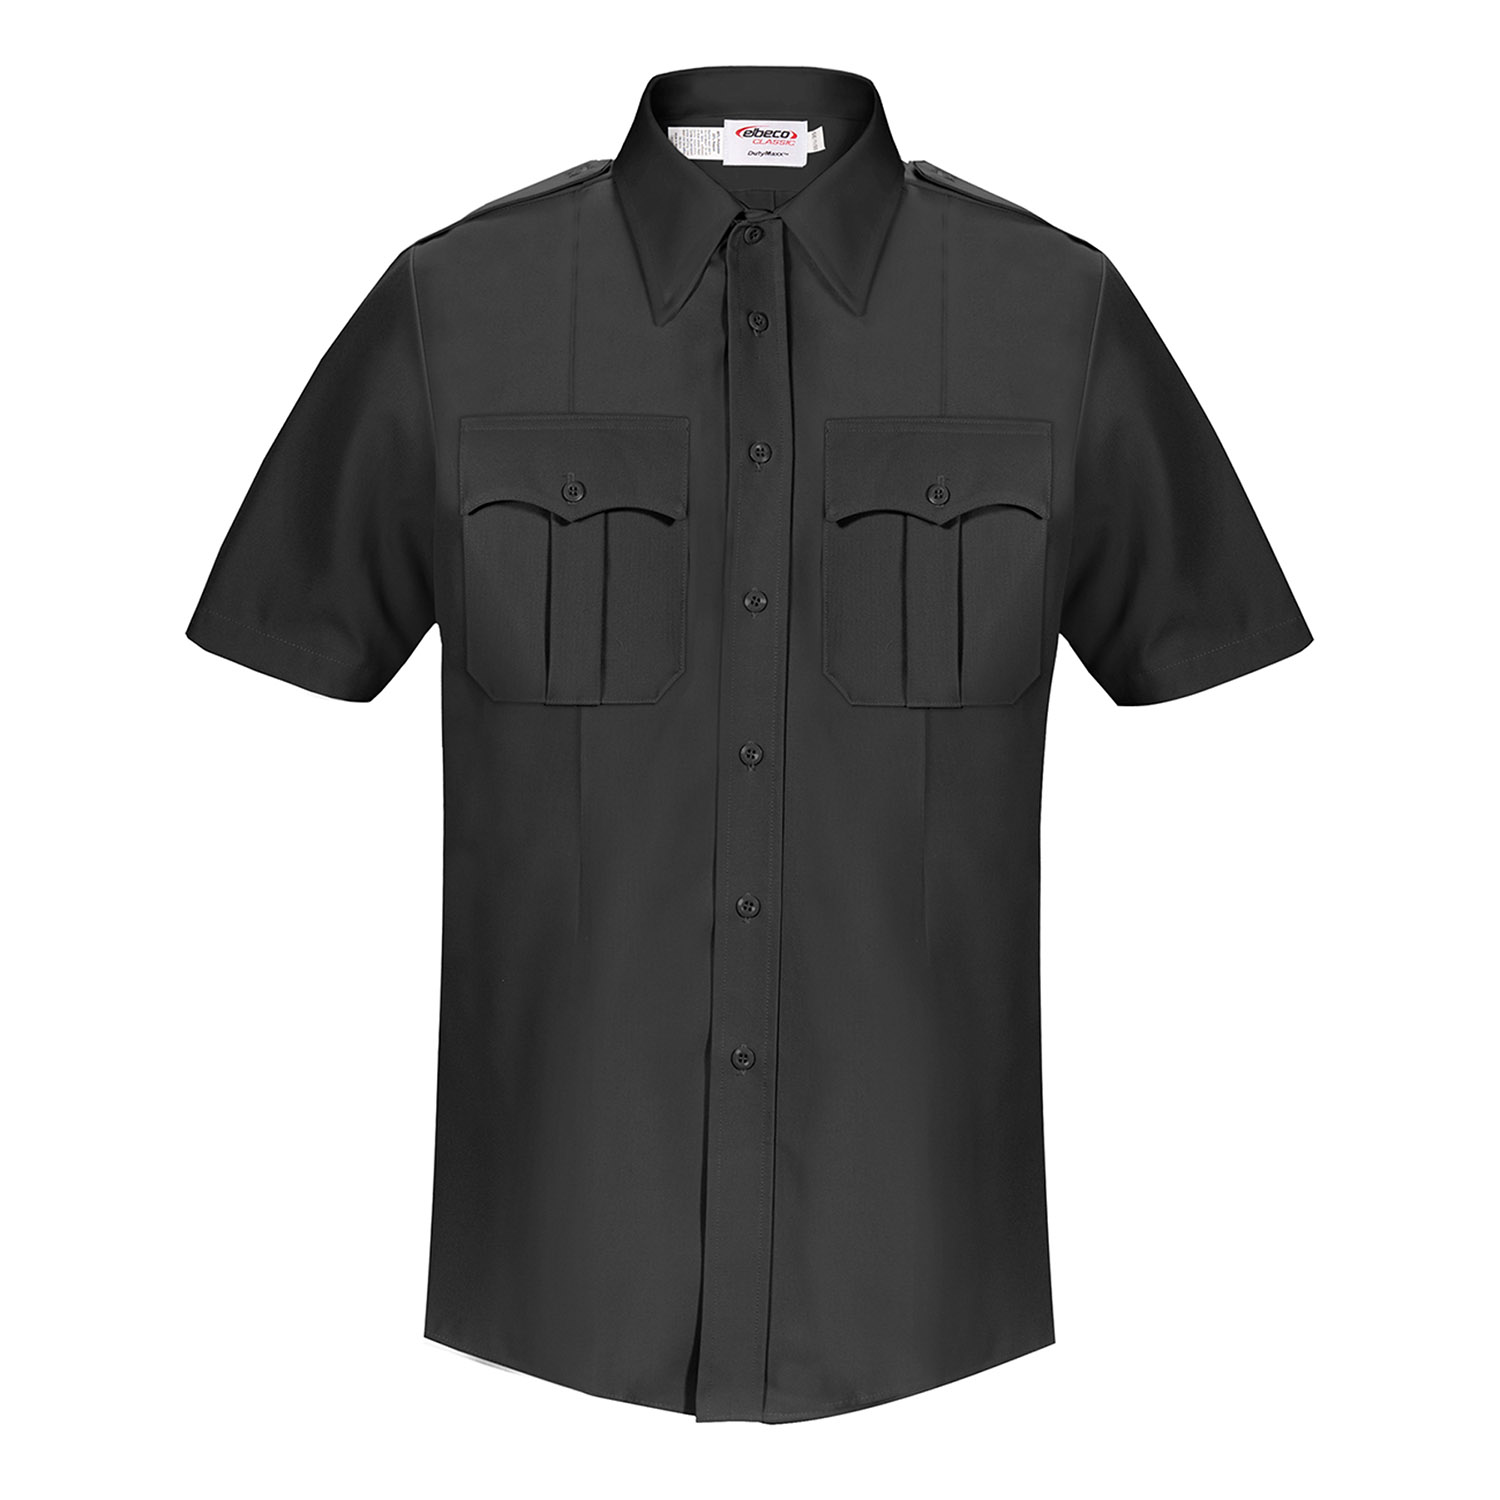 Elbeco Classic Duty Maxx Men's Short-Sleeve Shirt